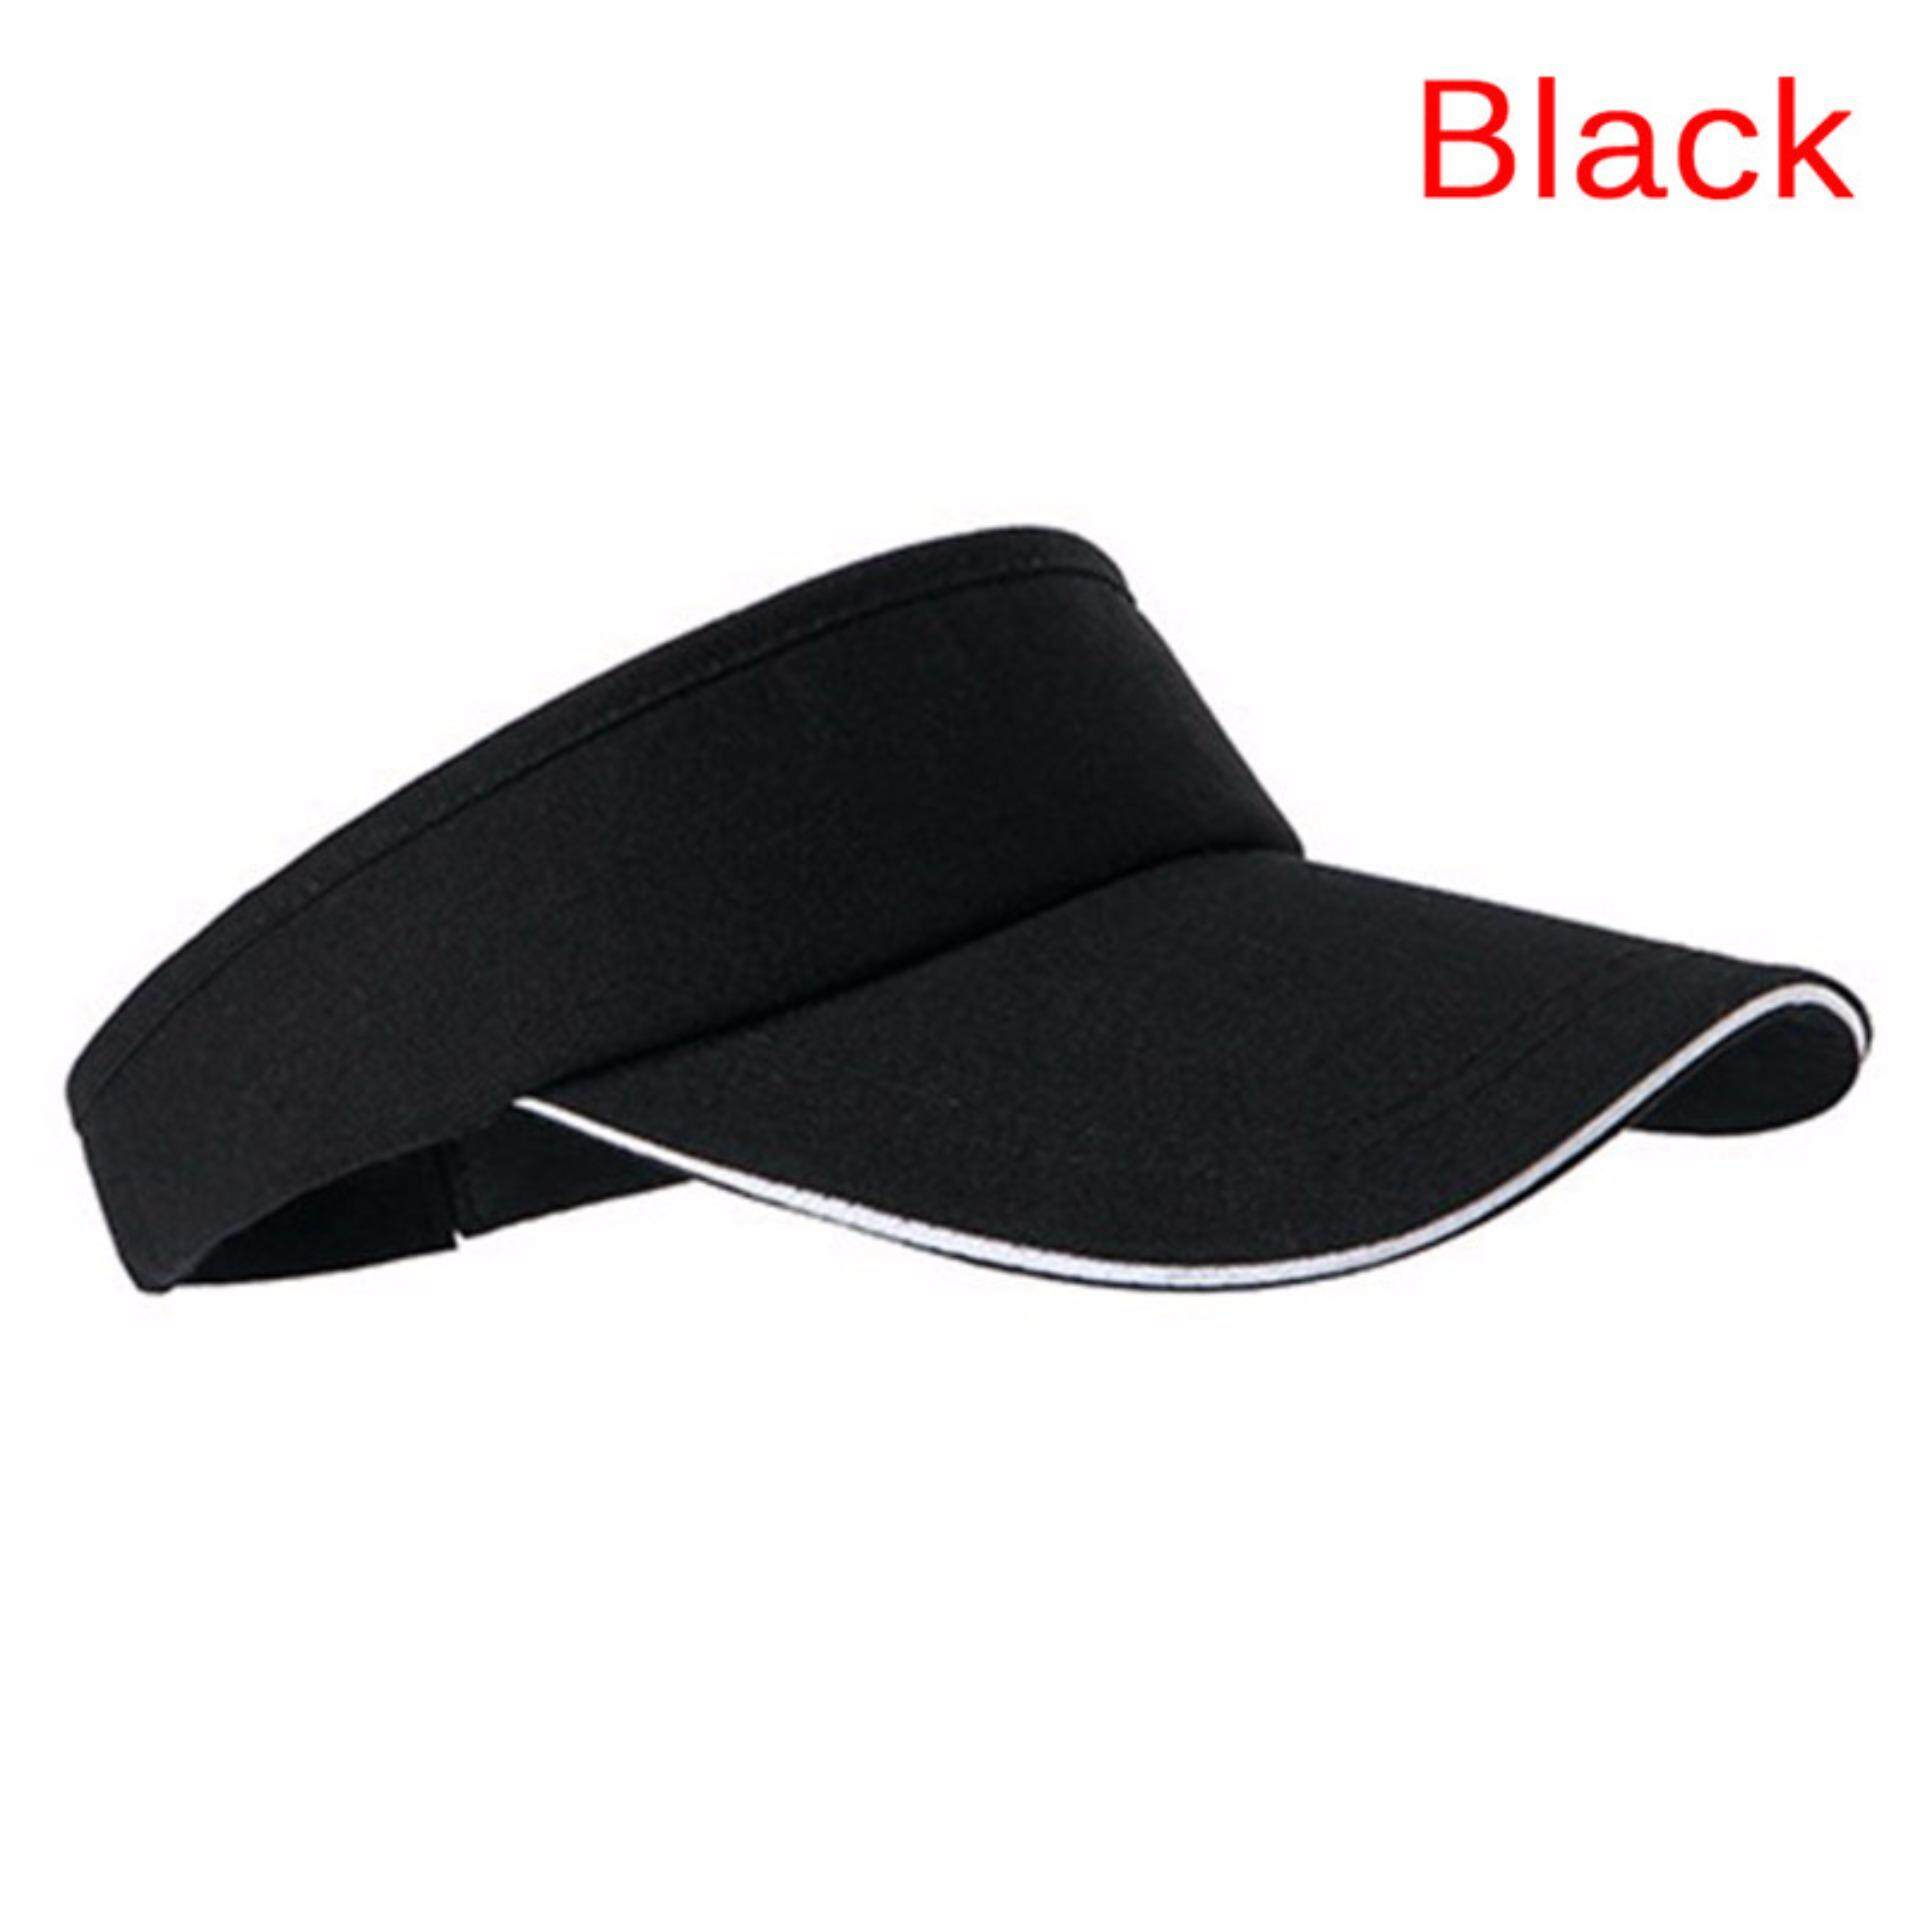 Adjustable Unisex Men Women Plain Sun Visor Sport Golf Tennis Breathable Cap  Hat 626418aa76c9